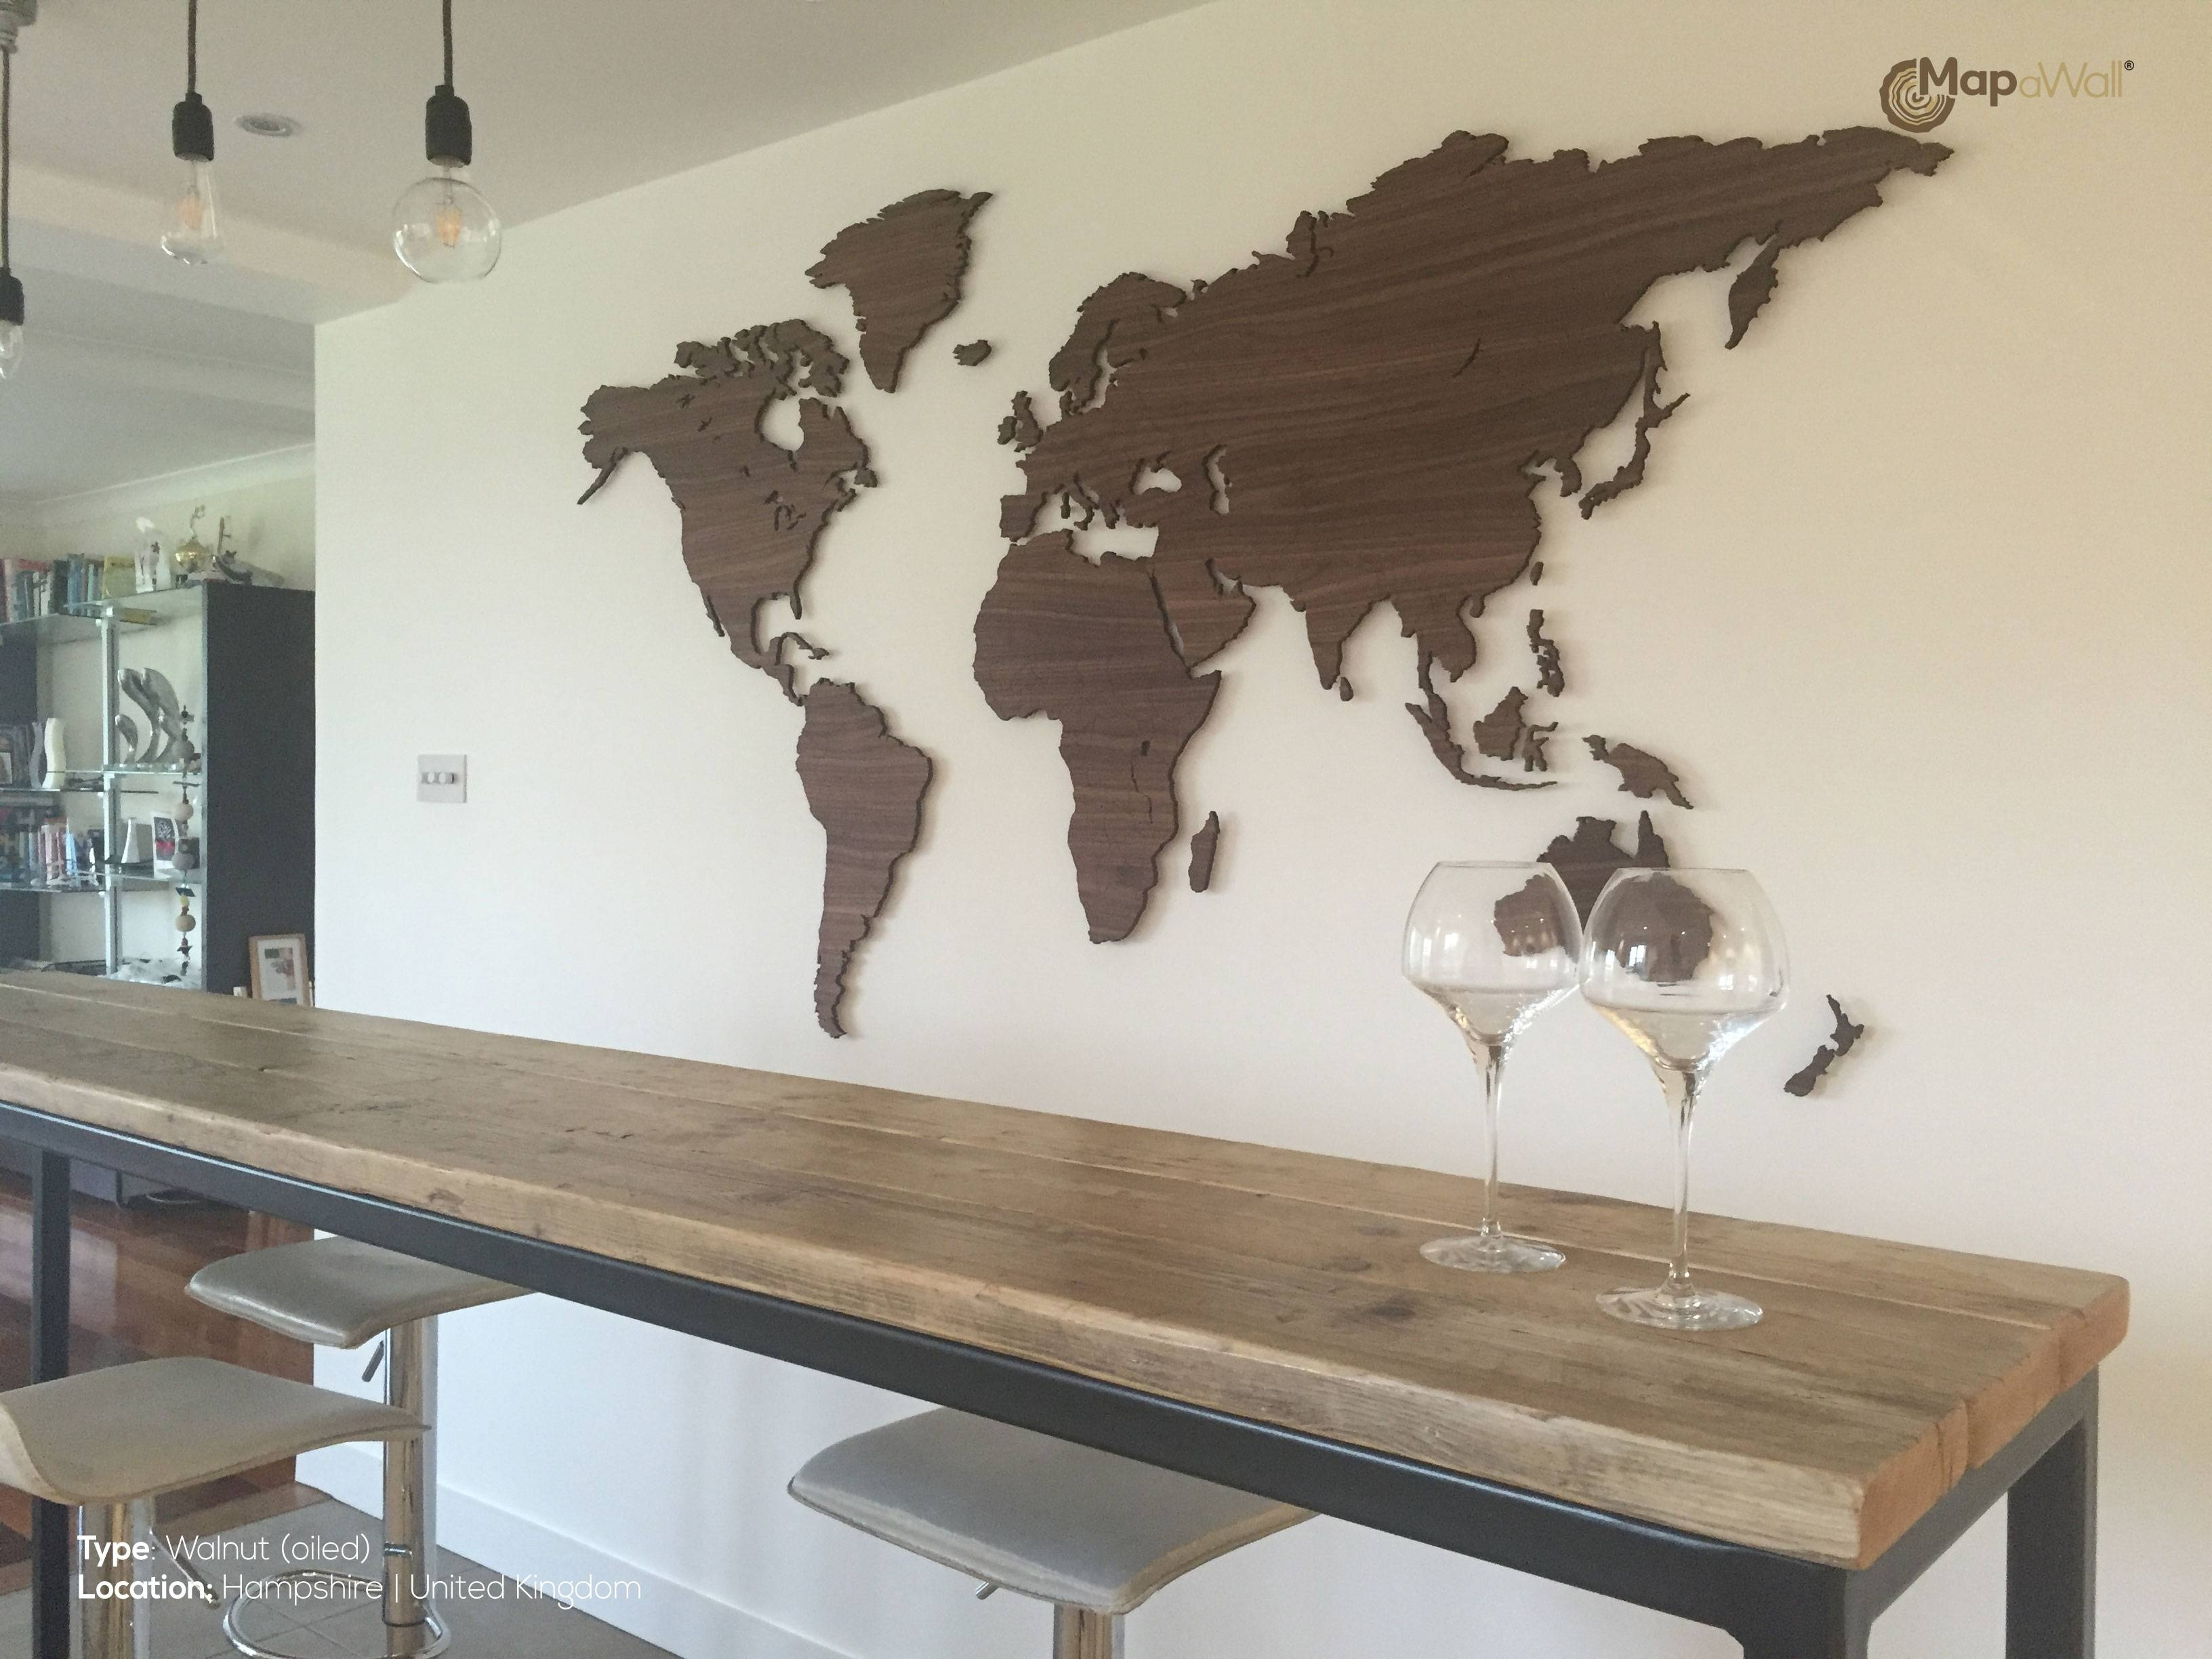 World Map Walnut Country Borders – Mapawall Pertaining To Latest Wooden World Map Wall Art (View 18 of 20)